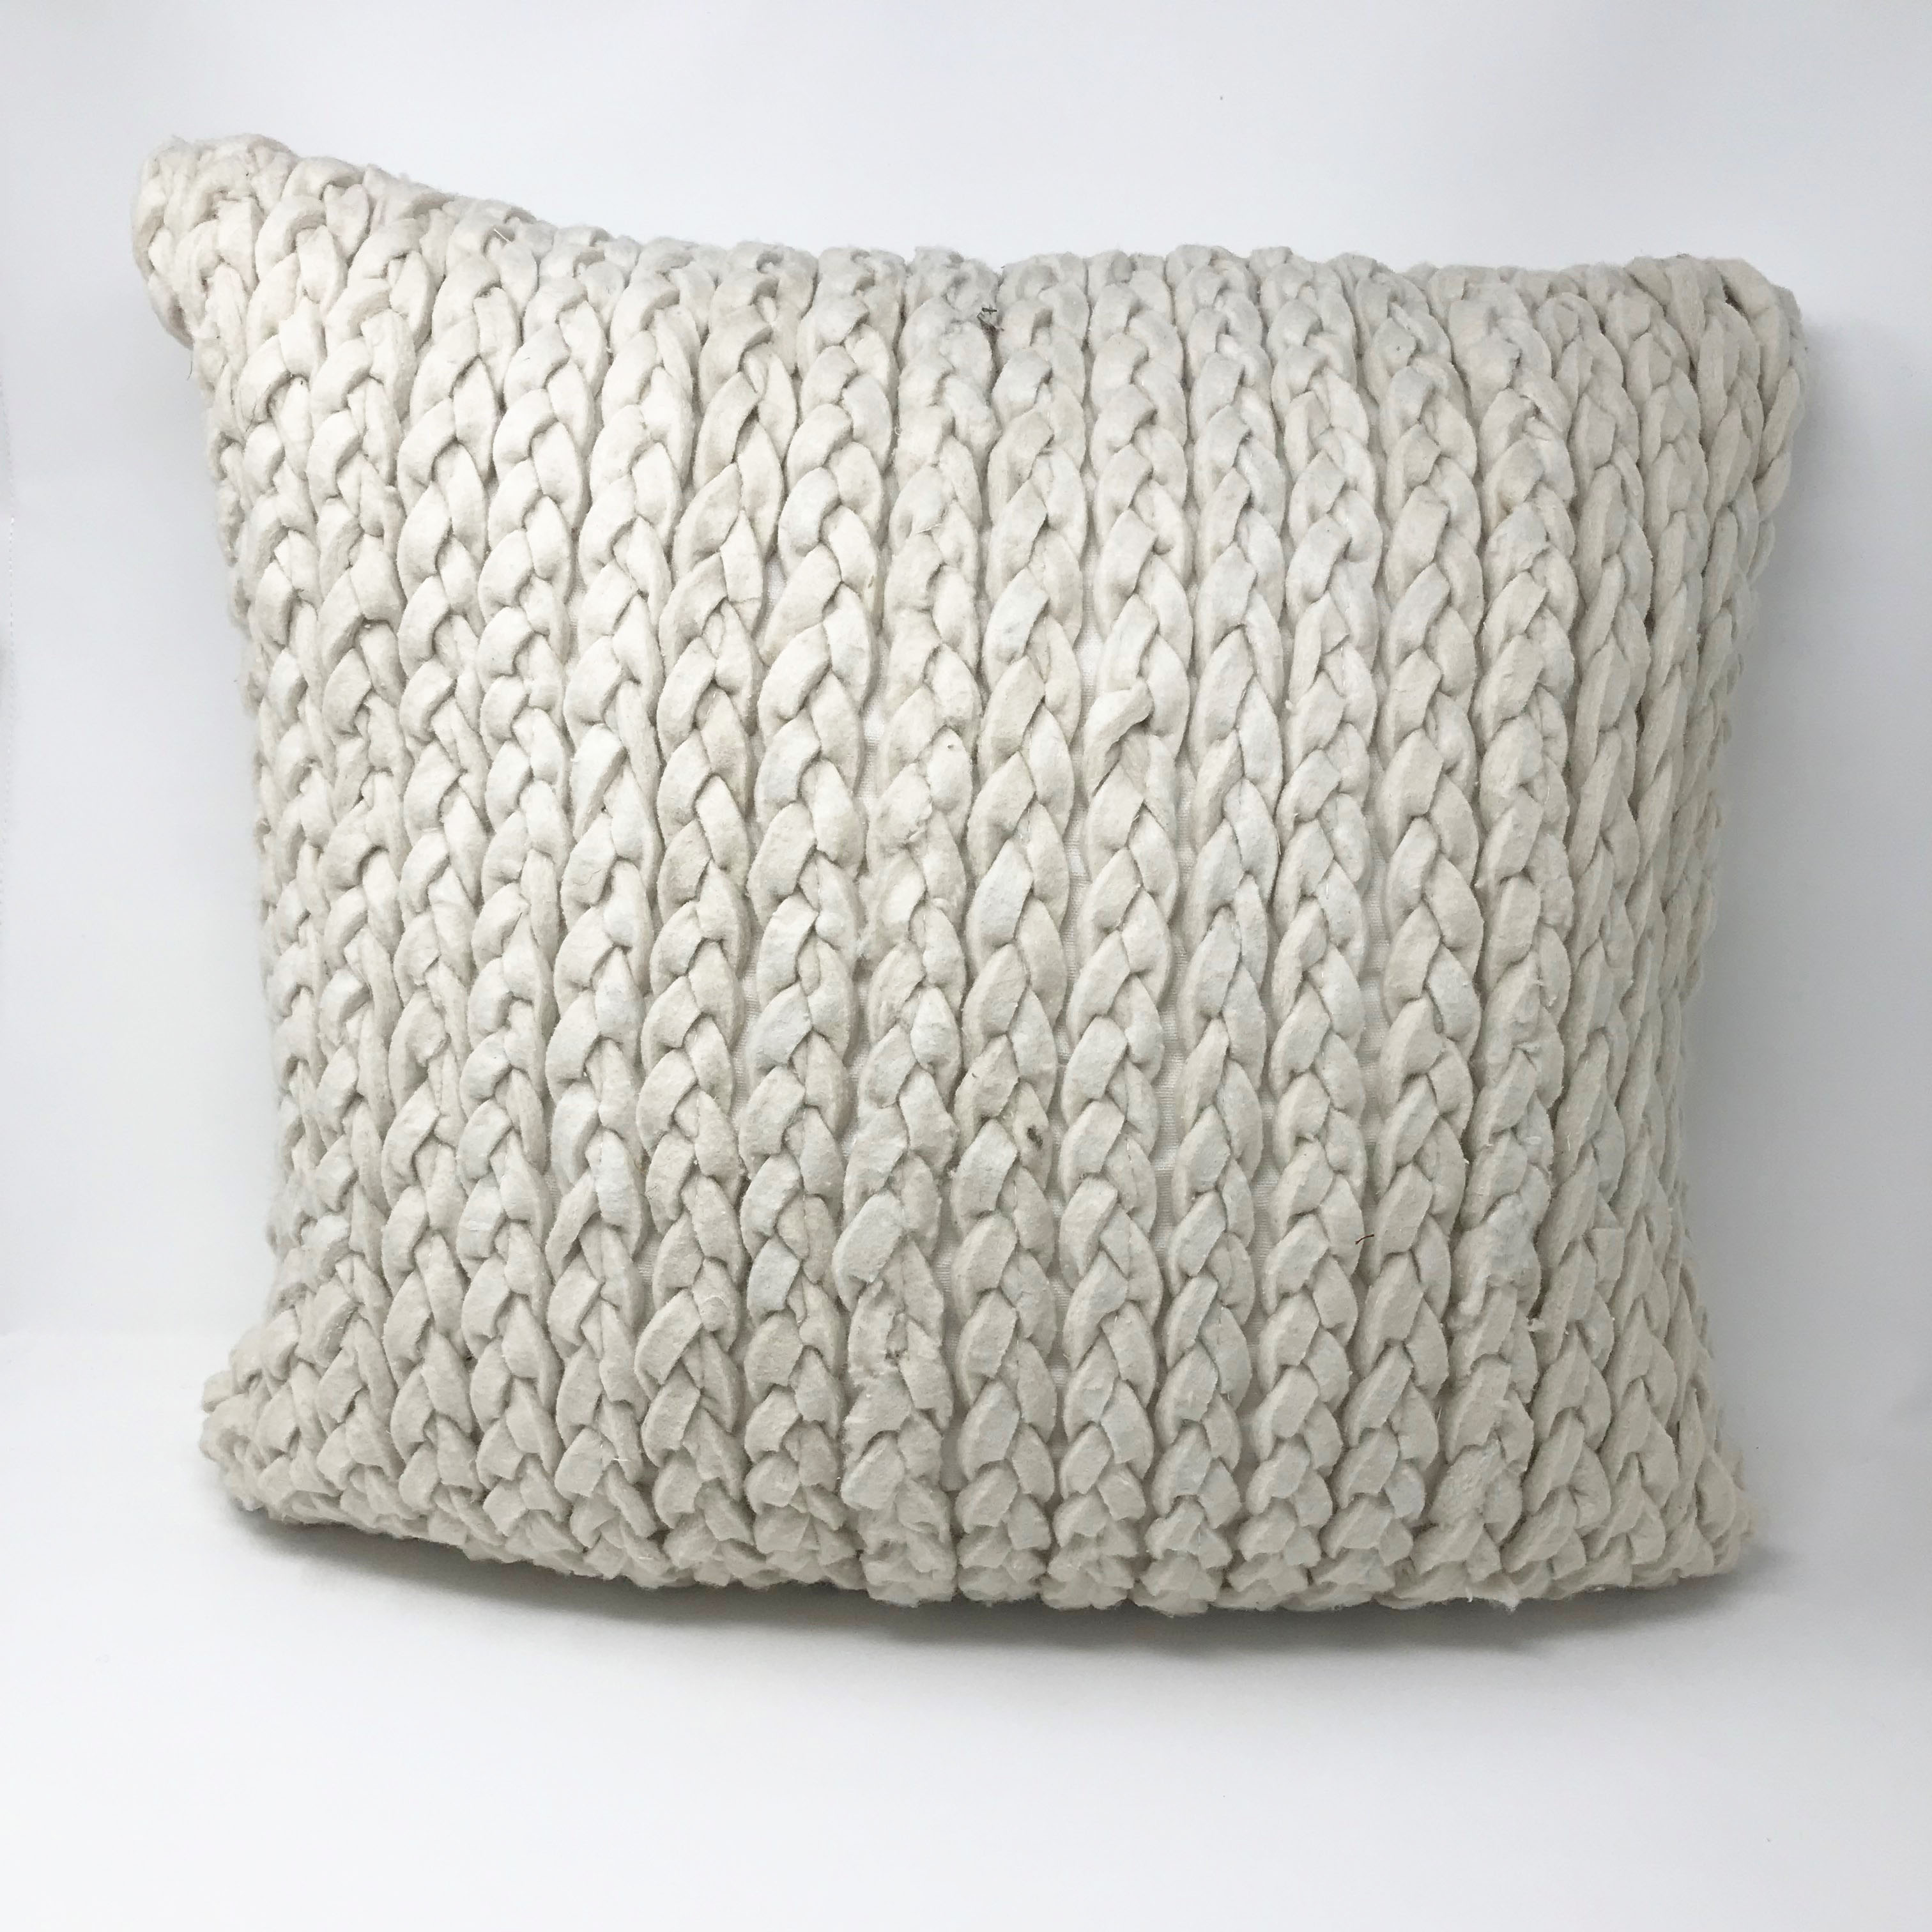 Plait Style Wool Rich Cotton Back Square Euro 50cm x 50cm Cushion Cover Only